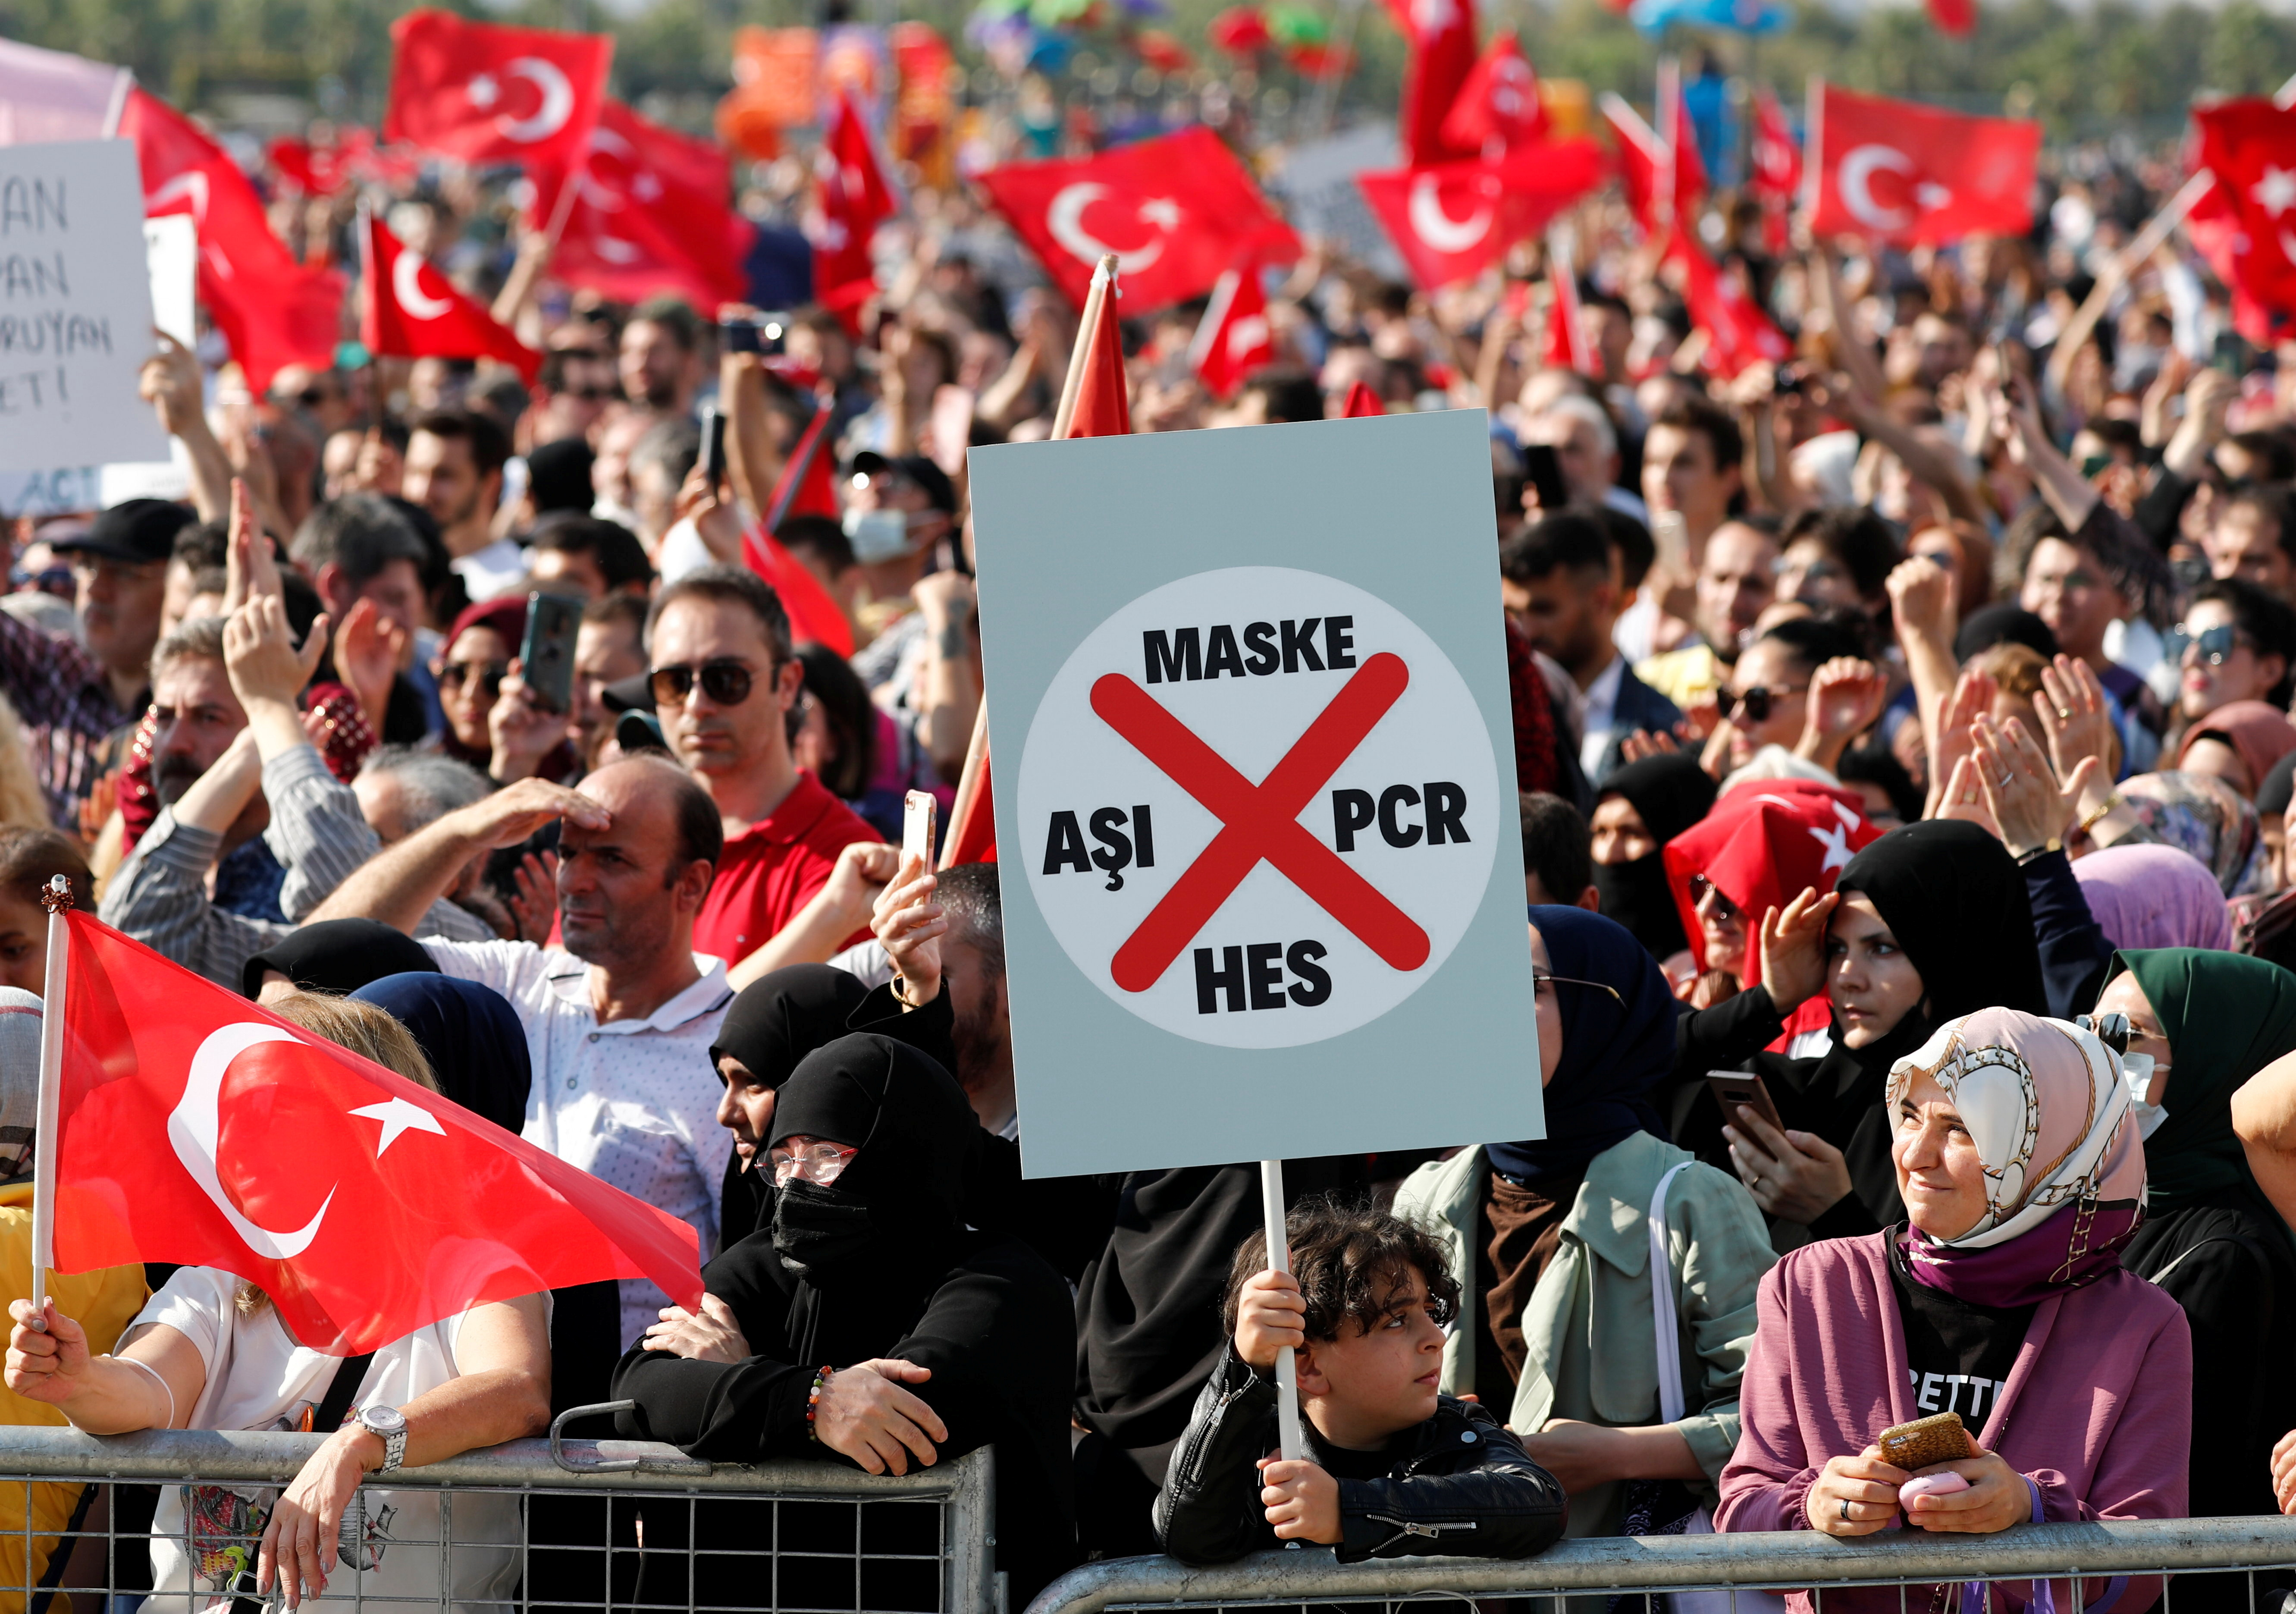 A boy holds a placard as anti-vaccine demonstrators wave Turkish flags during a protest against official coronavirus disease (COVID-19)-related mandates, including vaccinations, tests and masks, in Istanbul, Turkey September 11, 2021. REUTERS/Murad Sezer